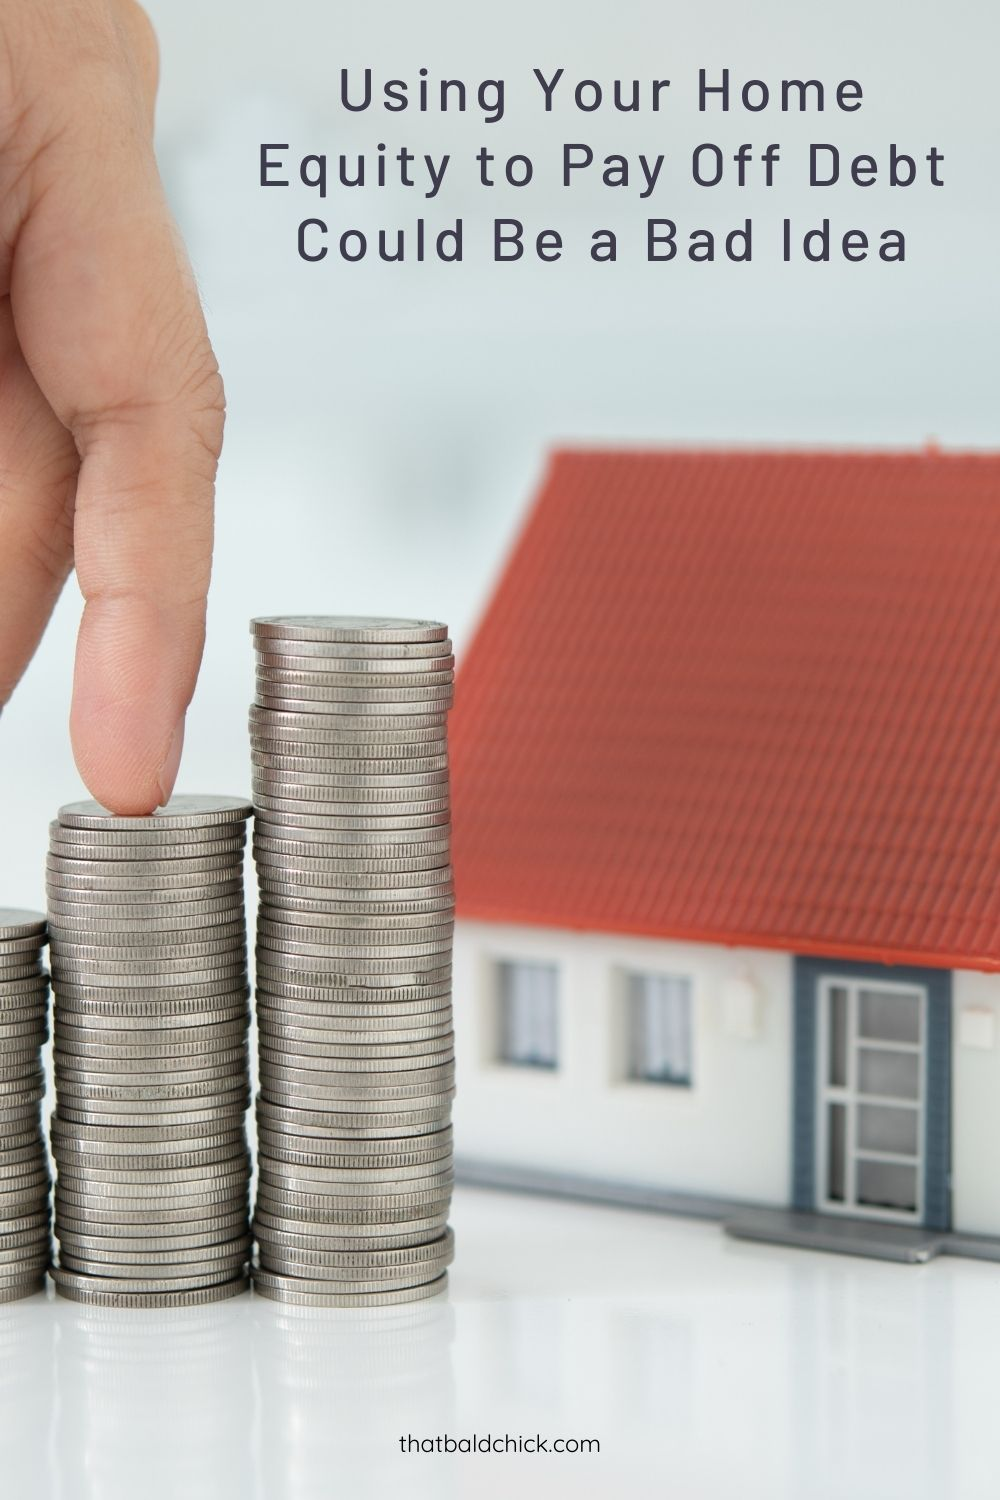 Using Your Home Equity to Pay Off Debt